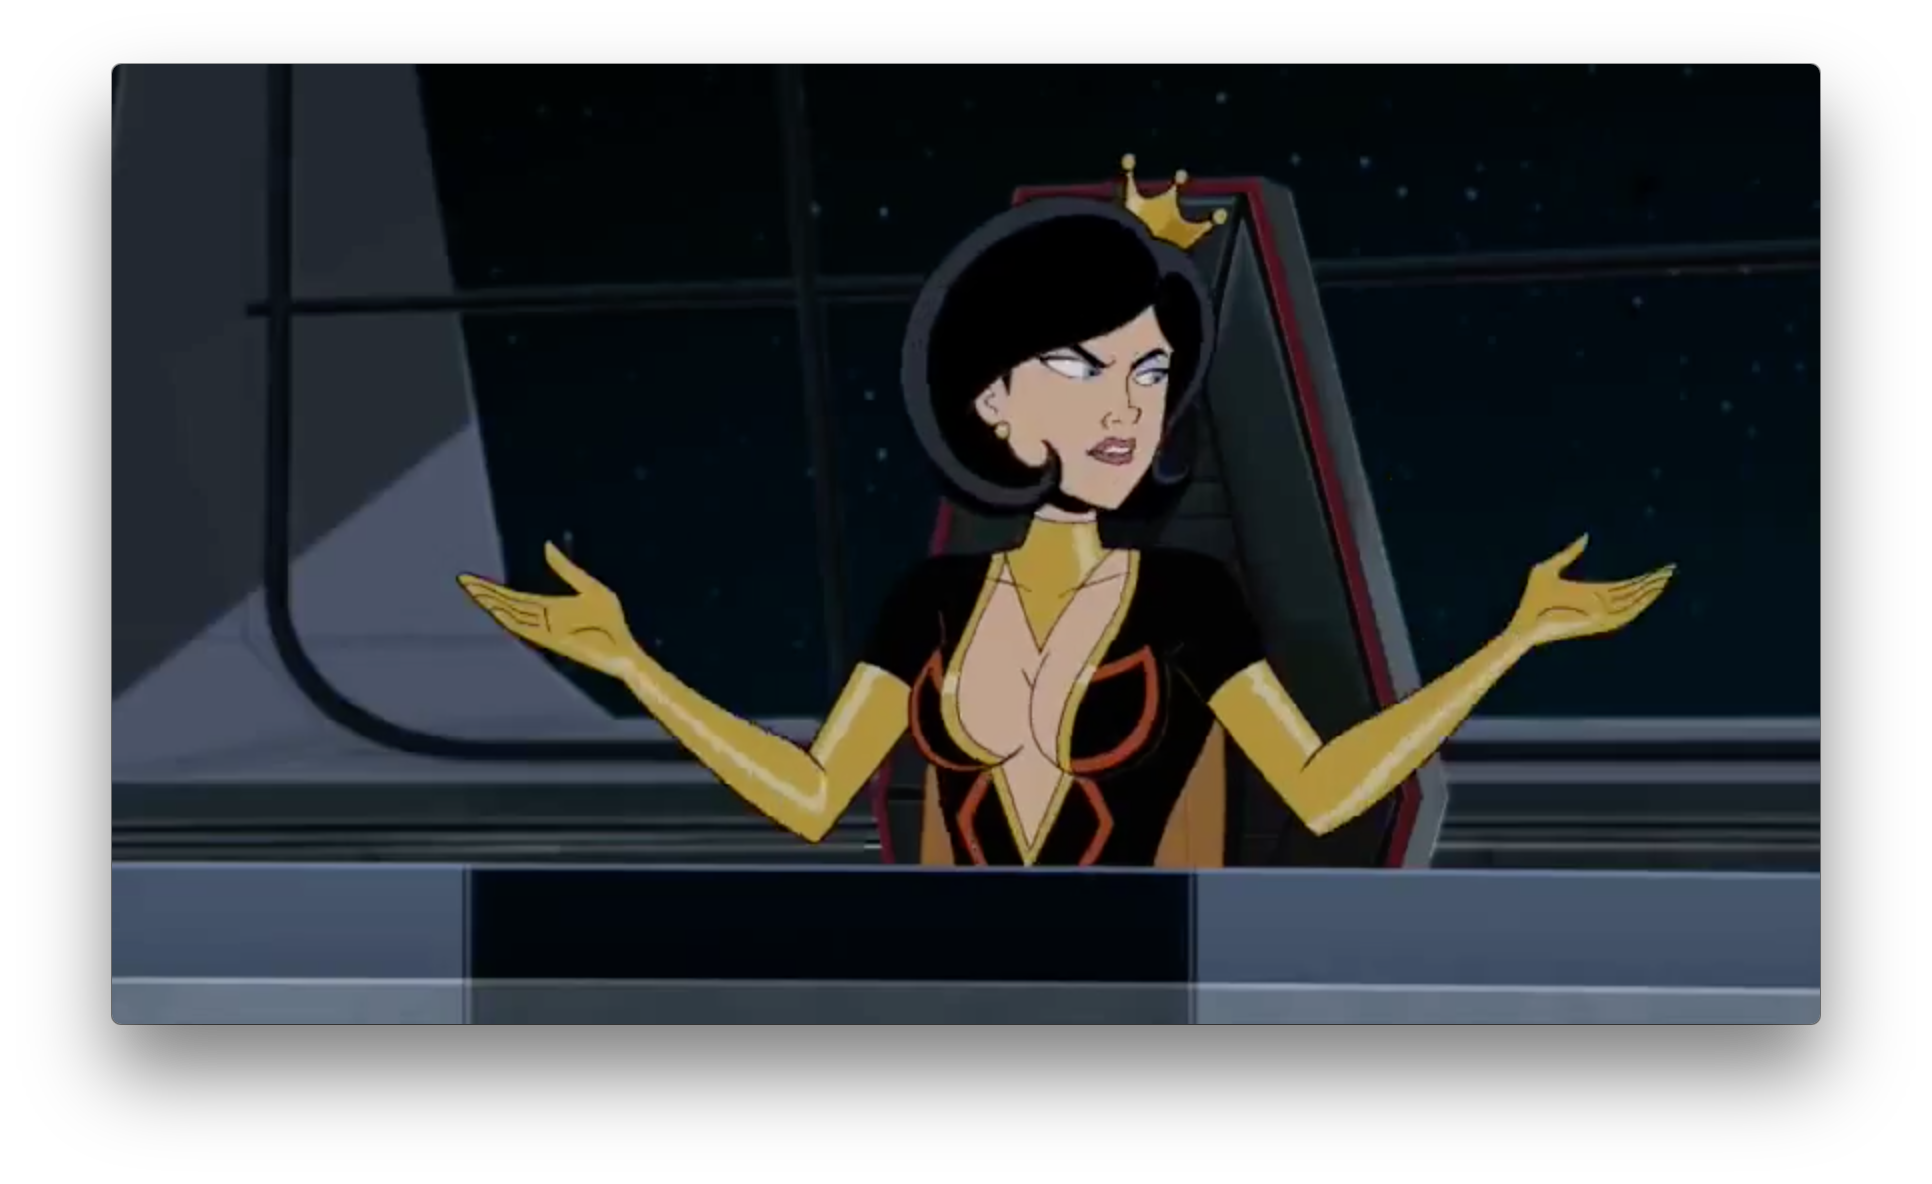 Dr. Mrs. The Monarch, still in her old costume,probably just taking the lead in Guild business in the new Council of 13 aboard Meteor Majeure?